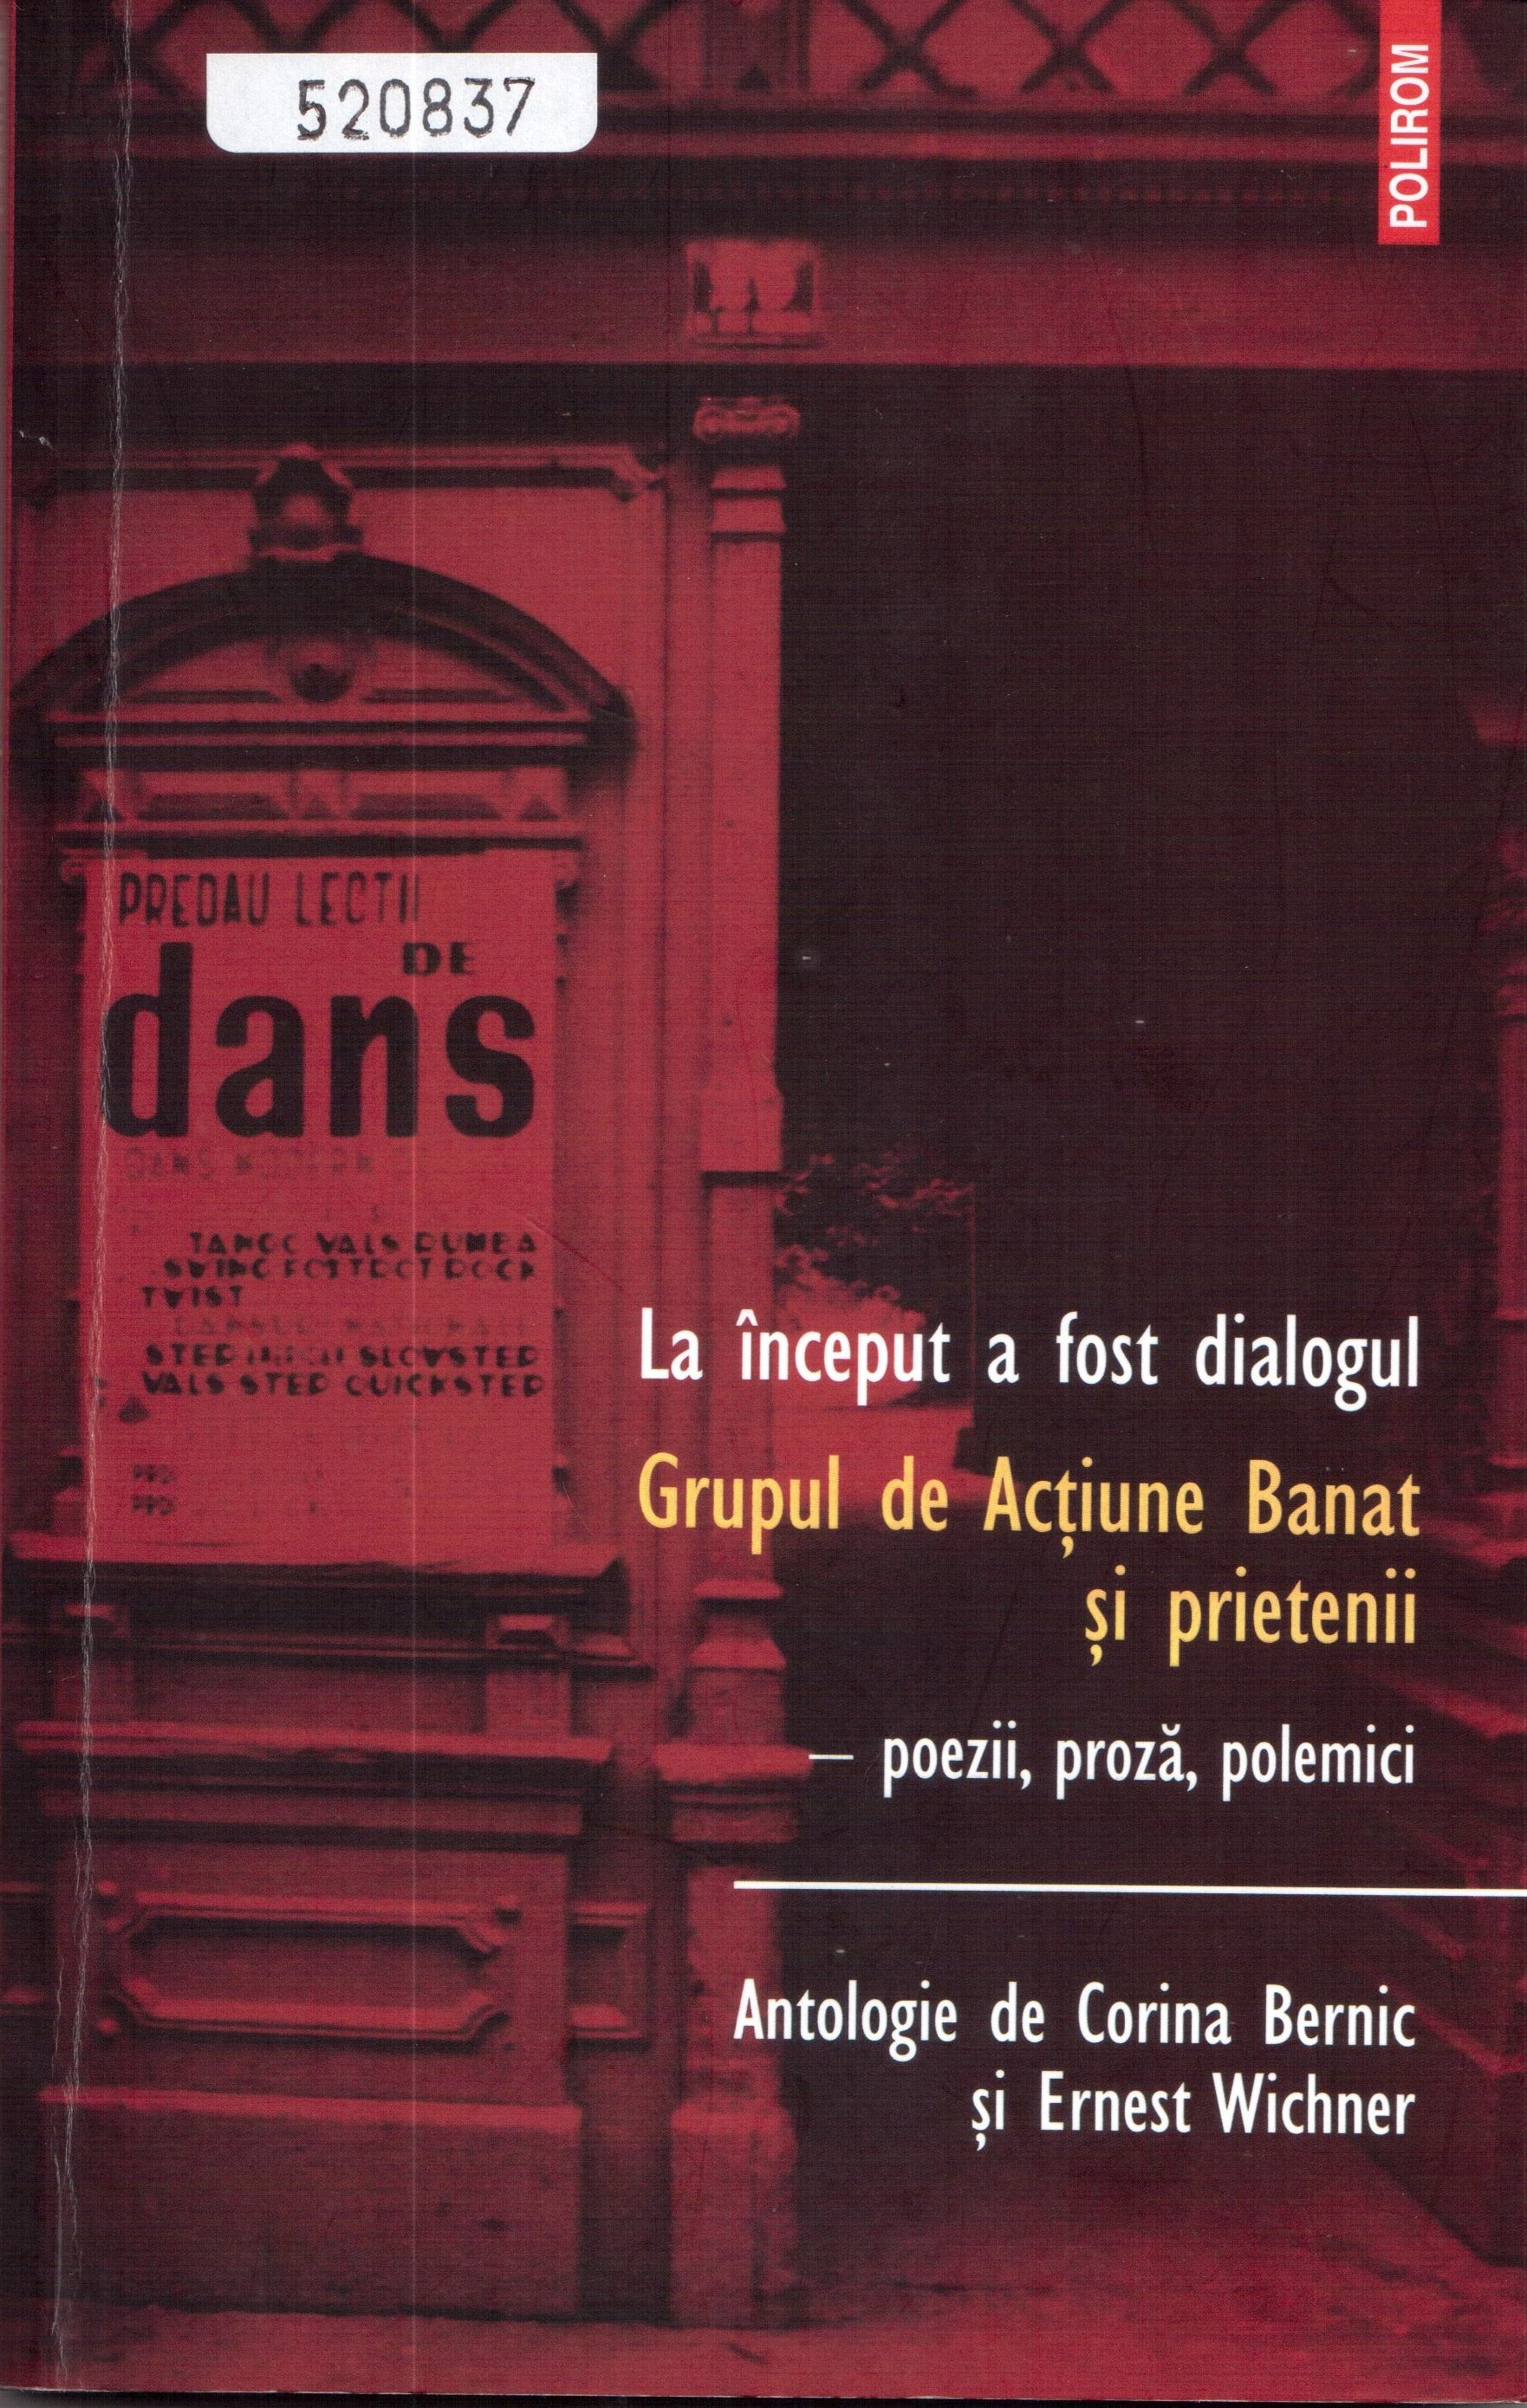 Front cover of the book La început a fost dialogul. Grupul de Acțiune Banat și prietenii: poezii, proza, polemici (At the beginning it was the dialog: Aktionsgruppe Banat and friends, poems, prose, debates), edited by Corina Bernic and Ernest Wichner